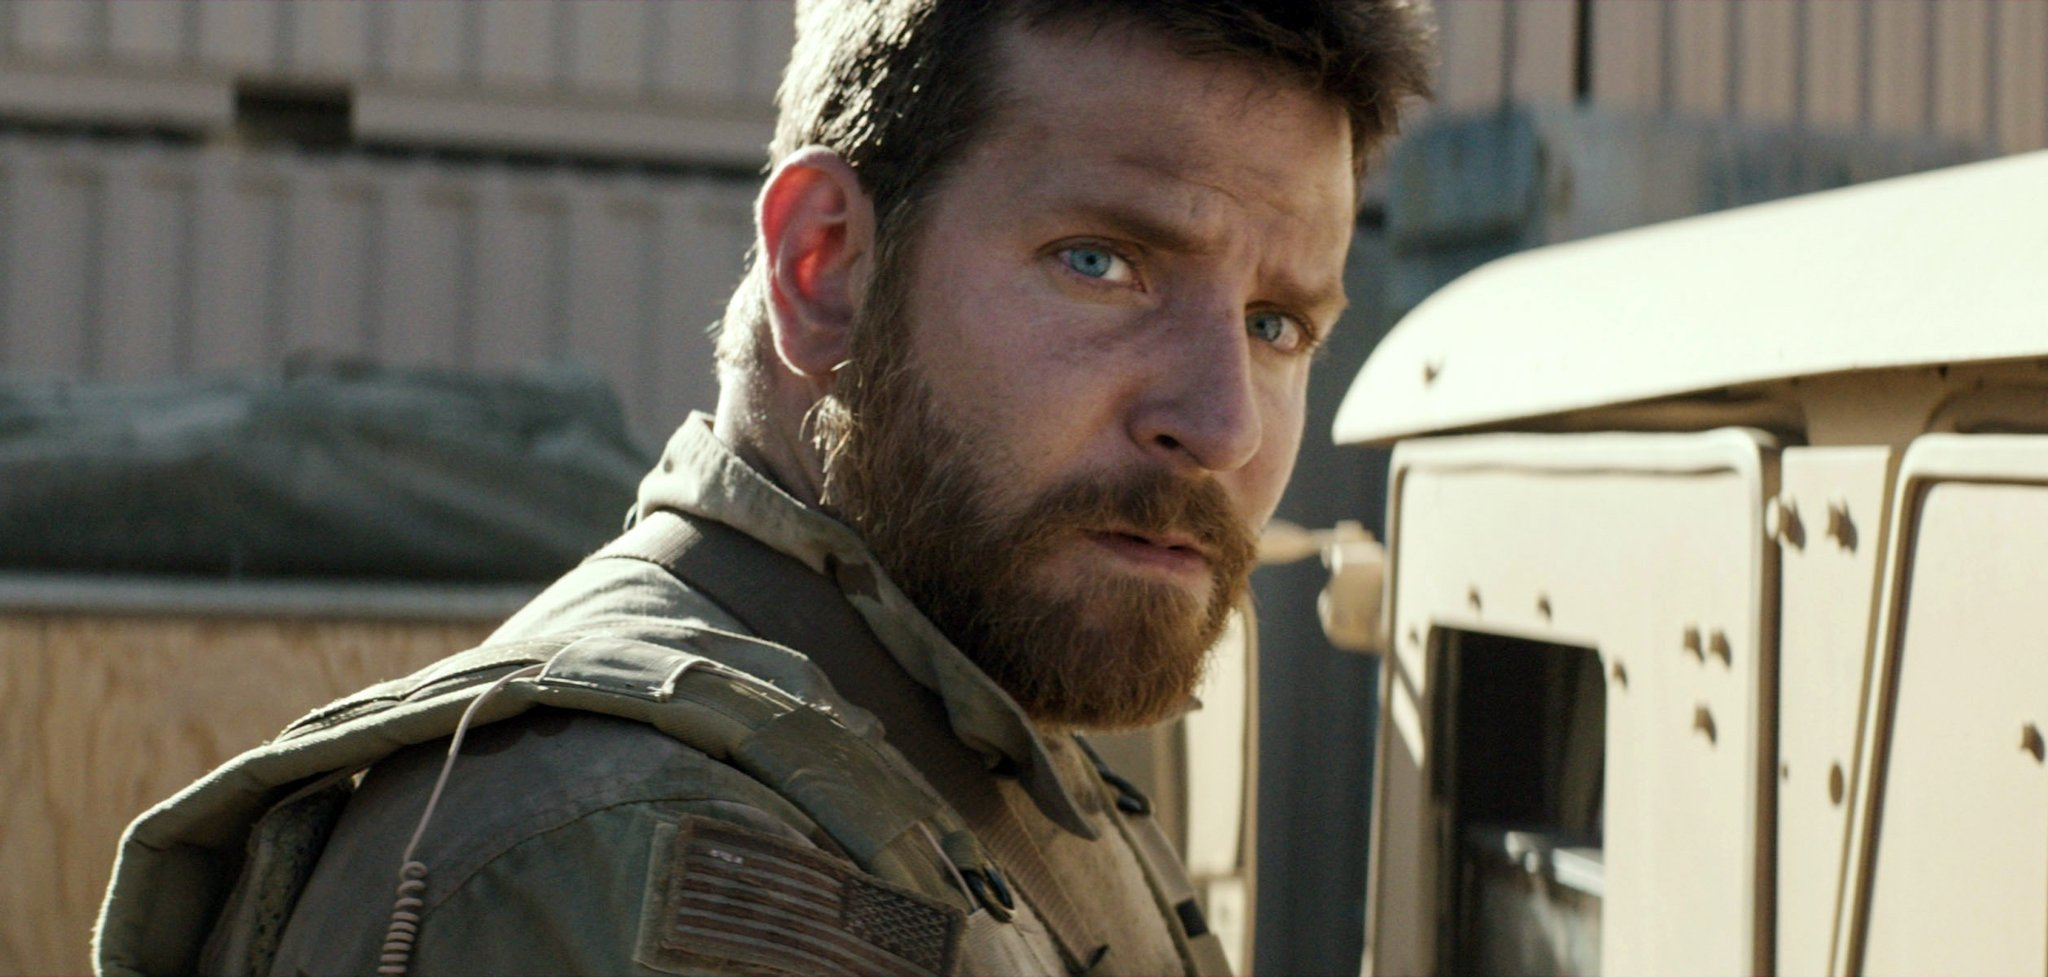 American Sniper Why Does A Soldier Go Back For More & More